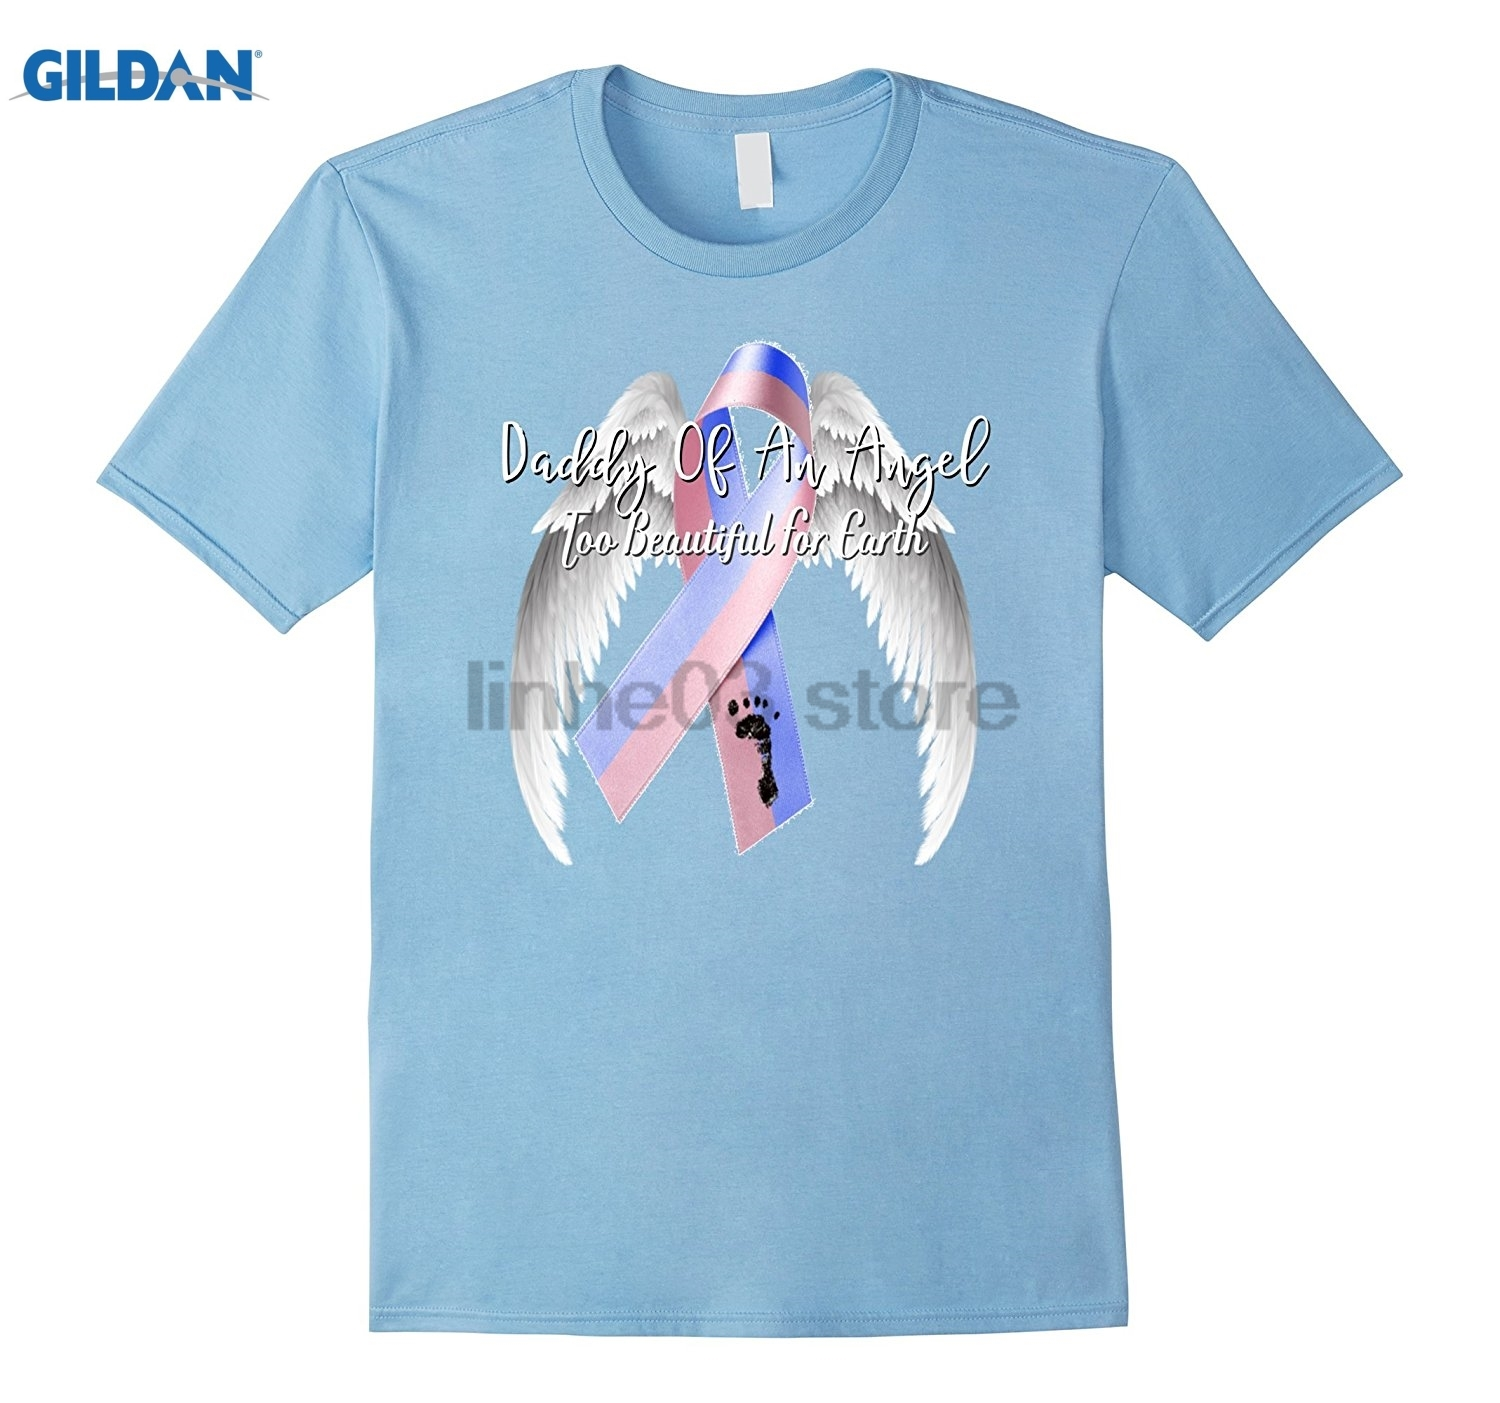 GILDAN Miscarriage Shirt Daddy Of Angel Pregnancy Loss Baby Infant Dress female T-shirt